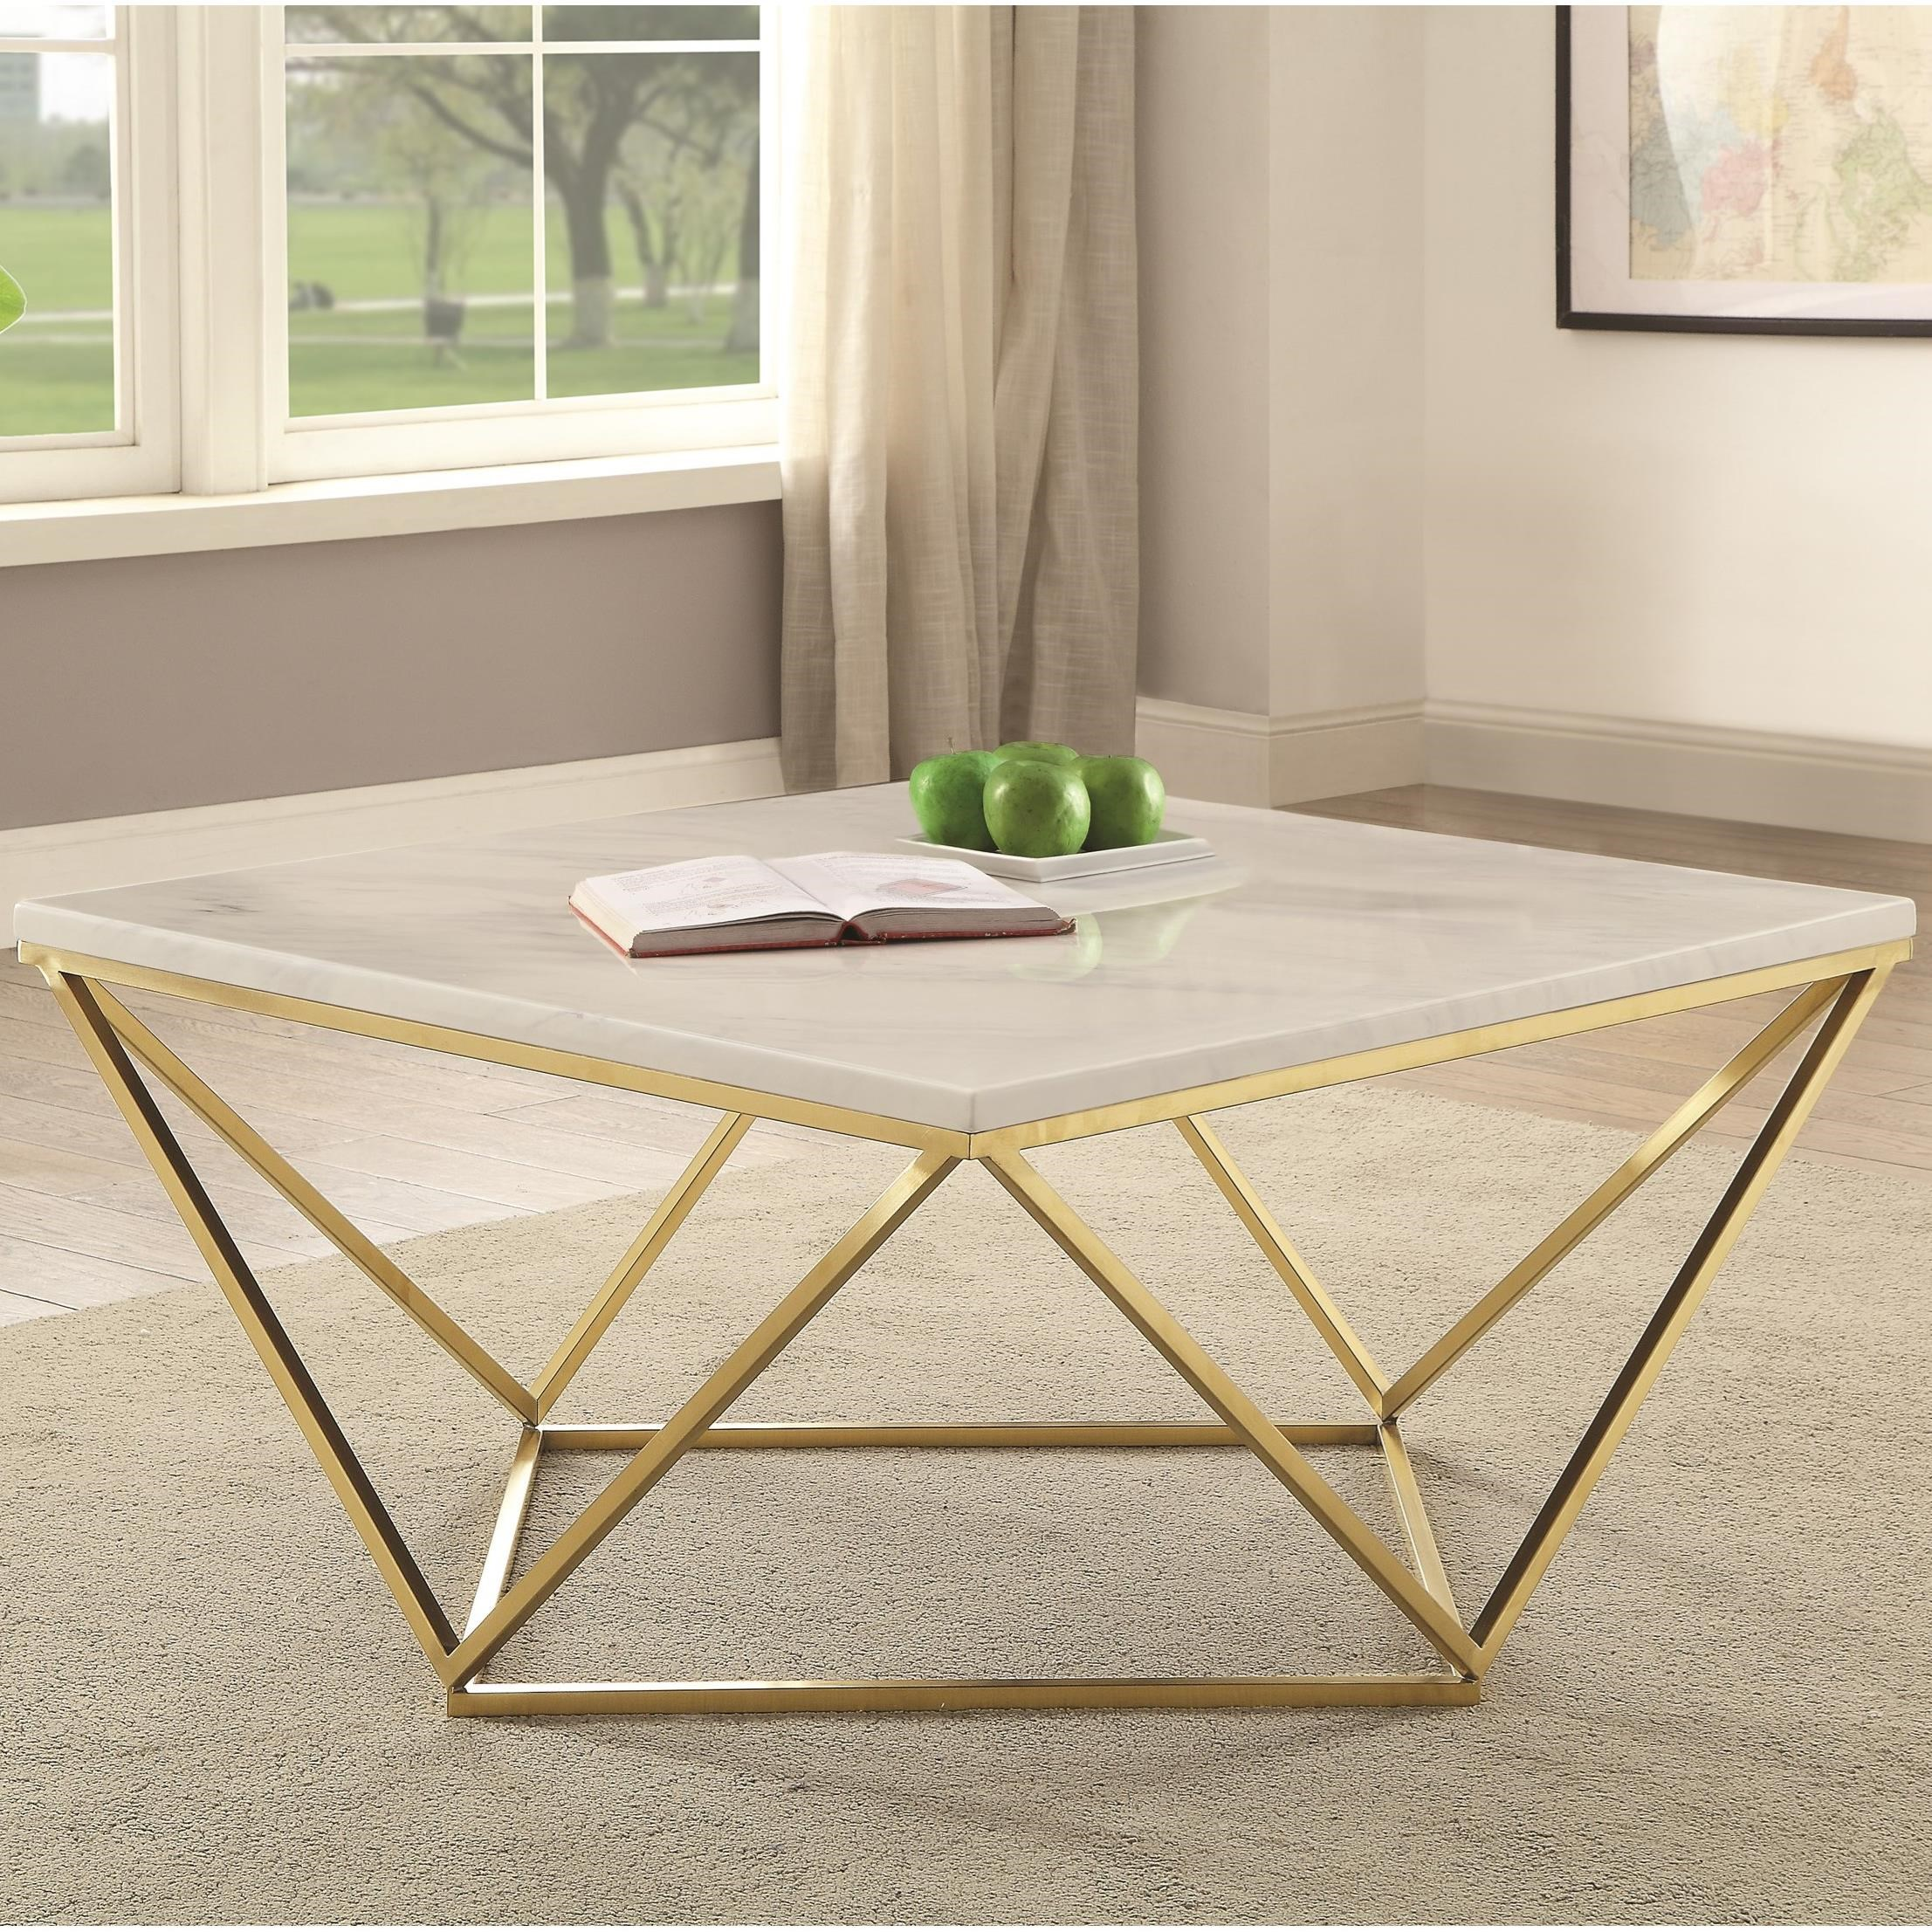 Coaster 700846 700846 Contemporary Faux Marble Coffee Table Del Sol Furniture Cocktail